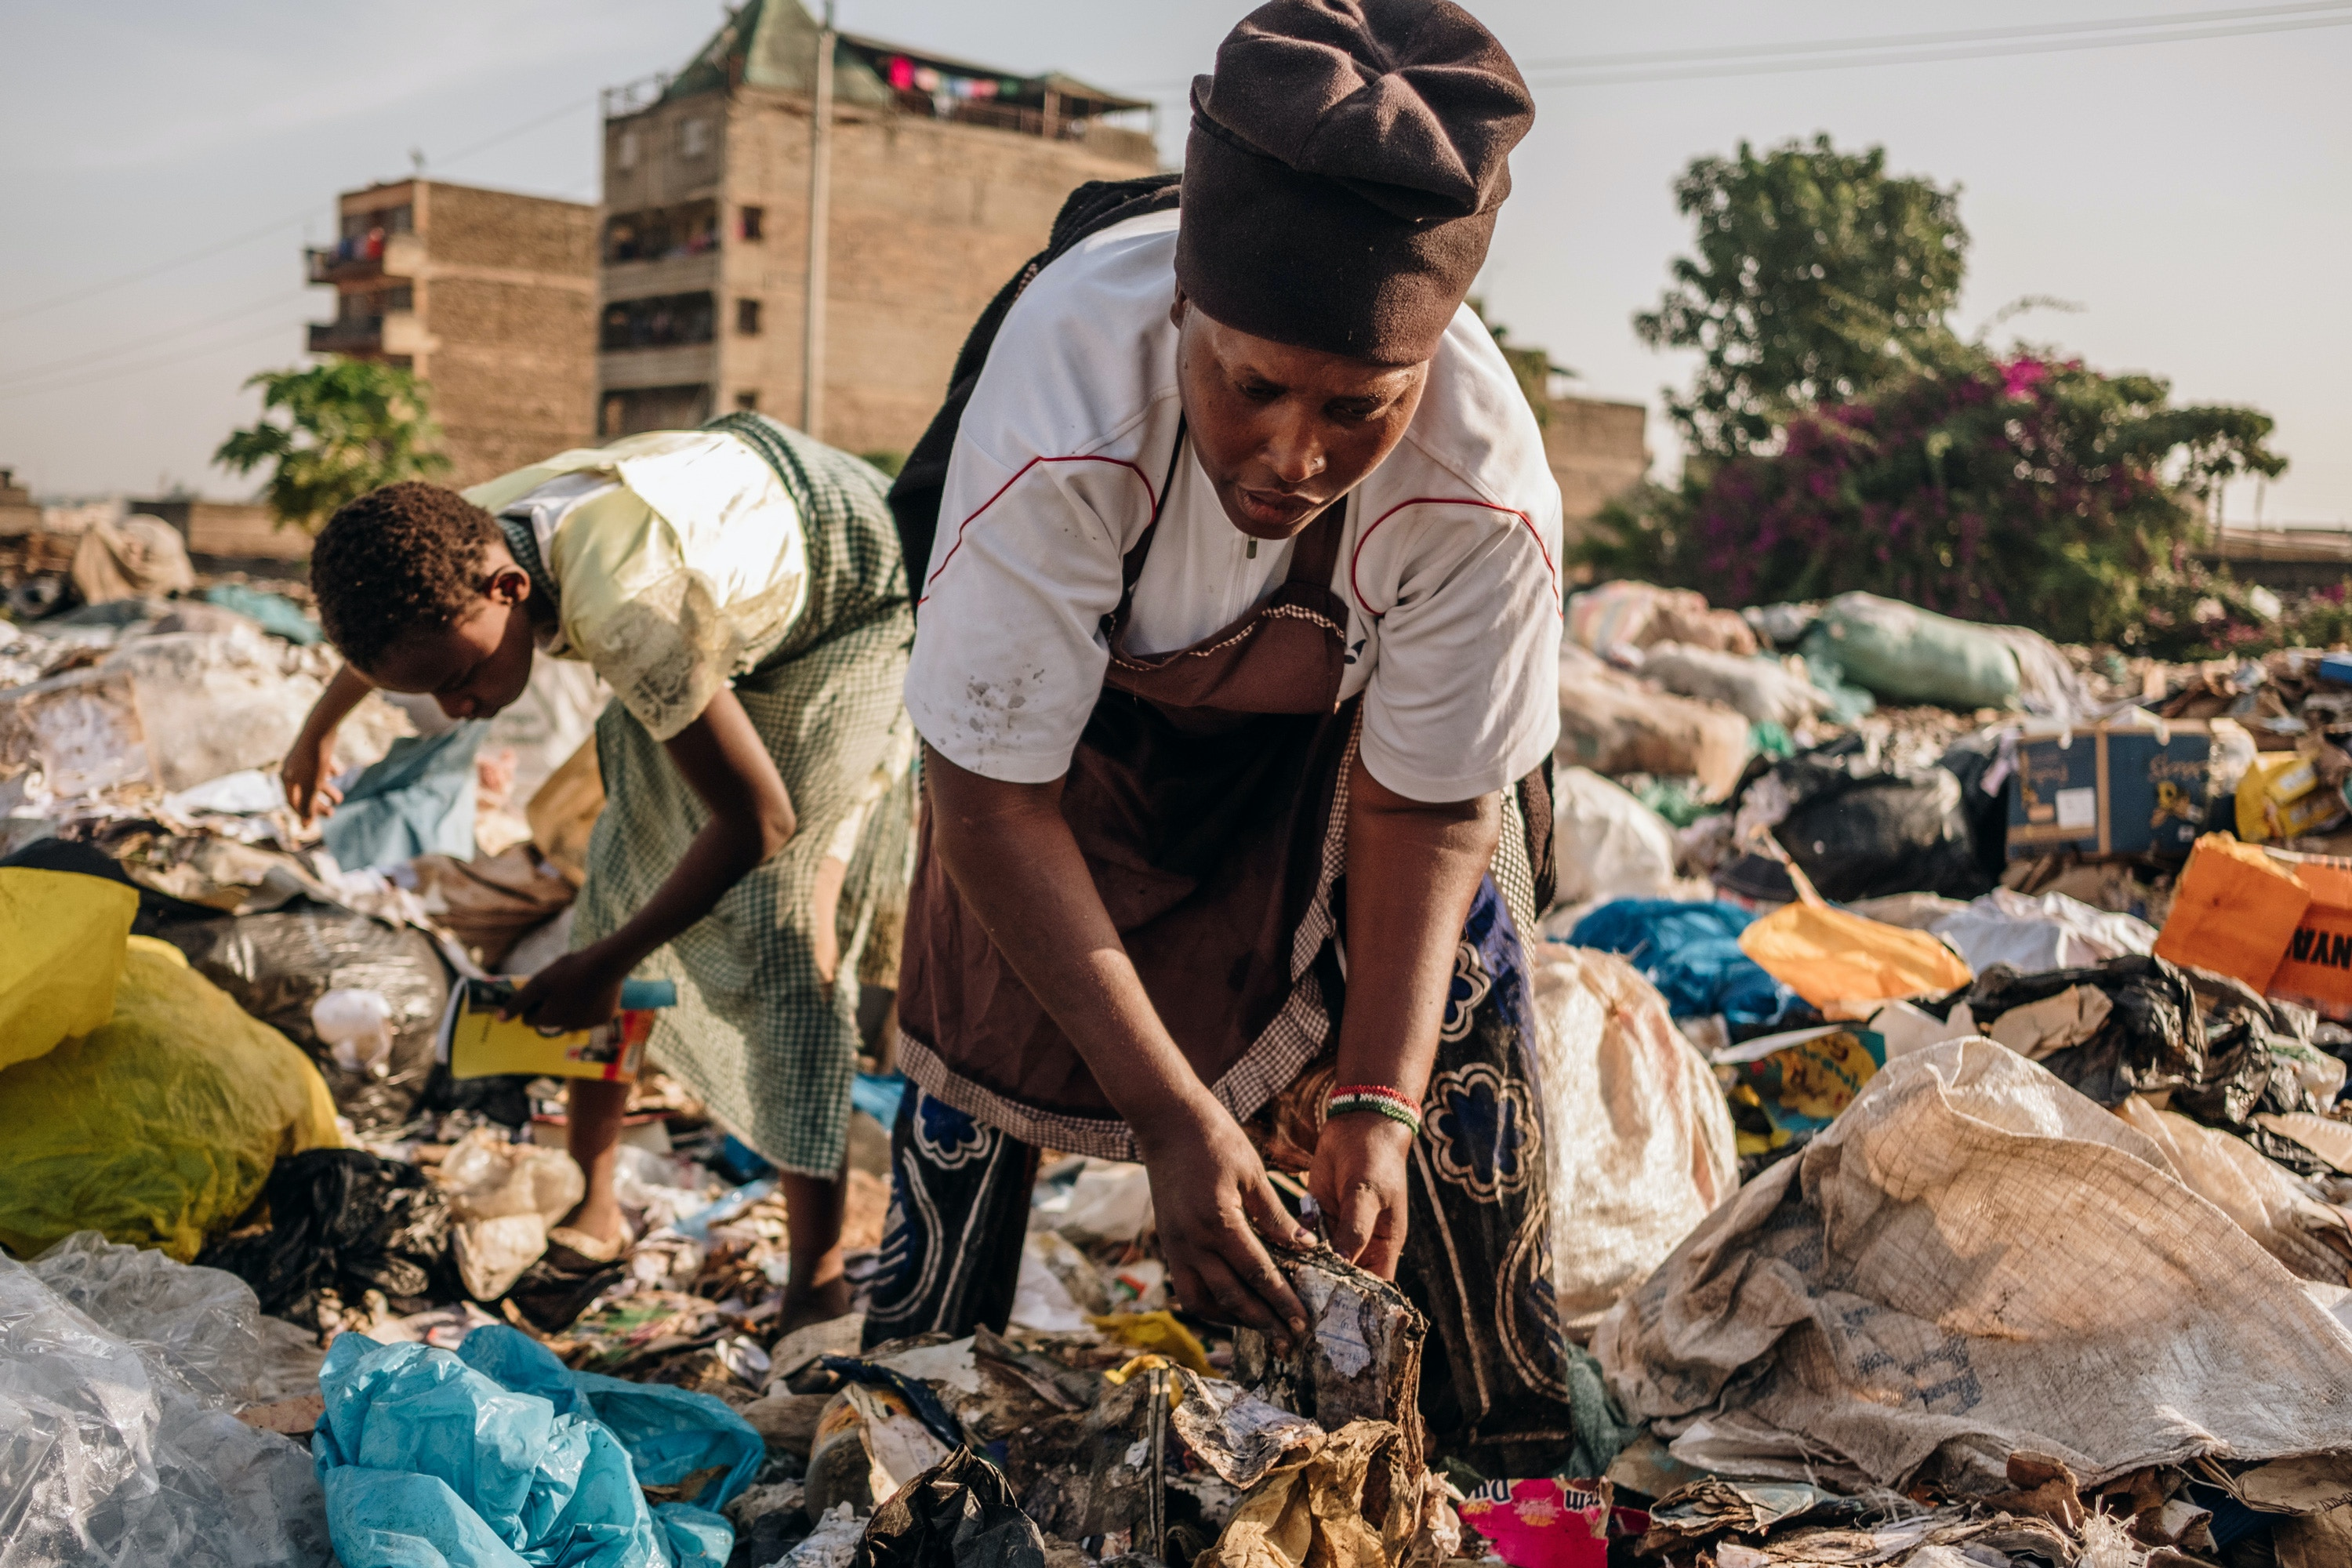 Miriam Nyambura and her 11-year-old niece, Rosemary, collect discarded cardboard boxes, paper, and plastic bottles at the Dandora dump on Feb. 29, 2020. Miriam picks an average of 20kgs of waste each day.